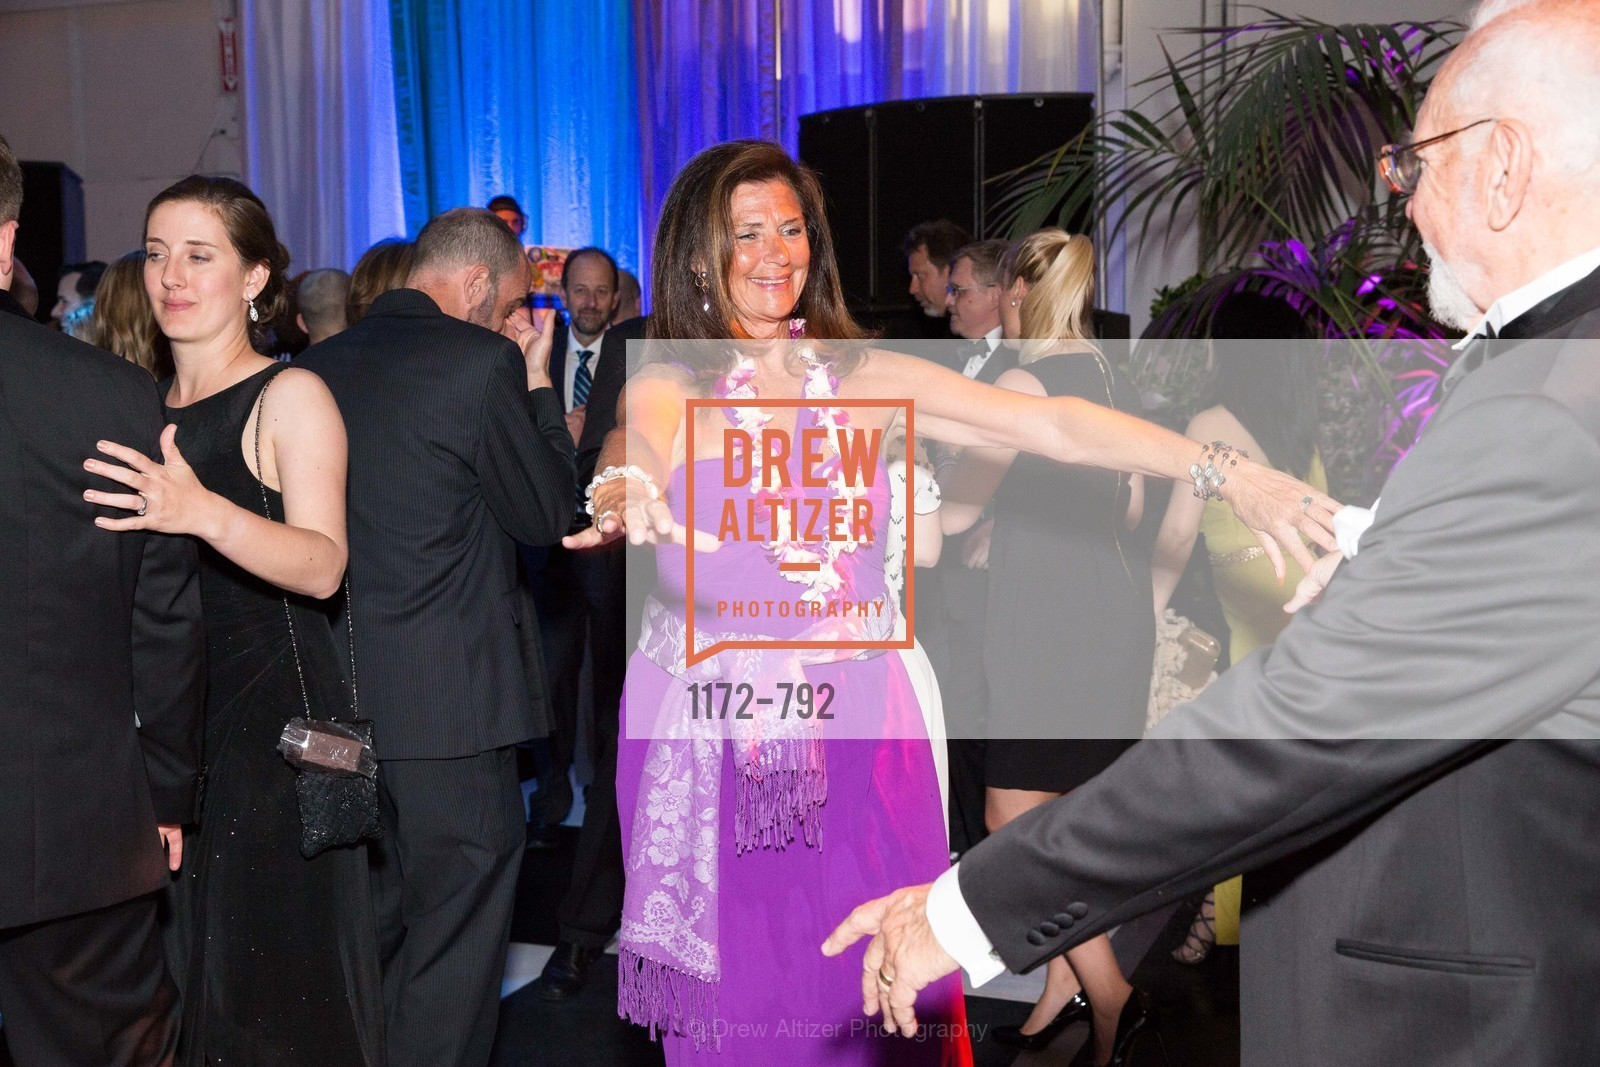 Linda Zider, MEALS ON WHEELS OF SAN FRANCISCO'S 28th Annual Star Chefs and Vintners Gala, US, April 19th, 2015,Drew Altizer, Drew Altizer Photography, full-service agency, private events, San Francisco photographer, photographer california